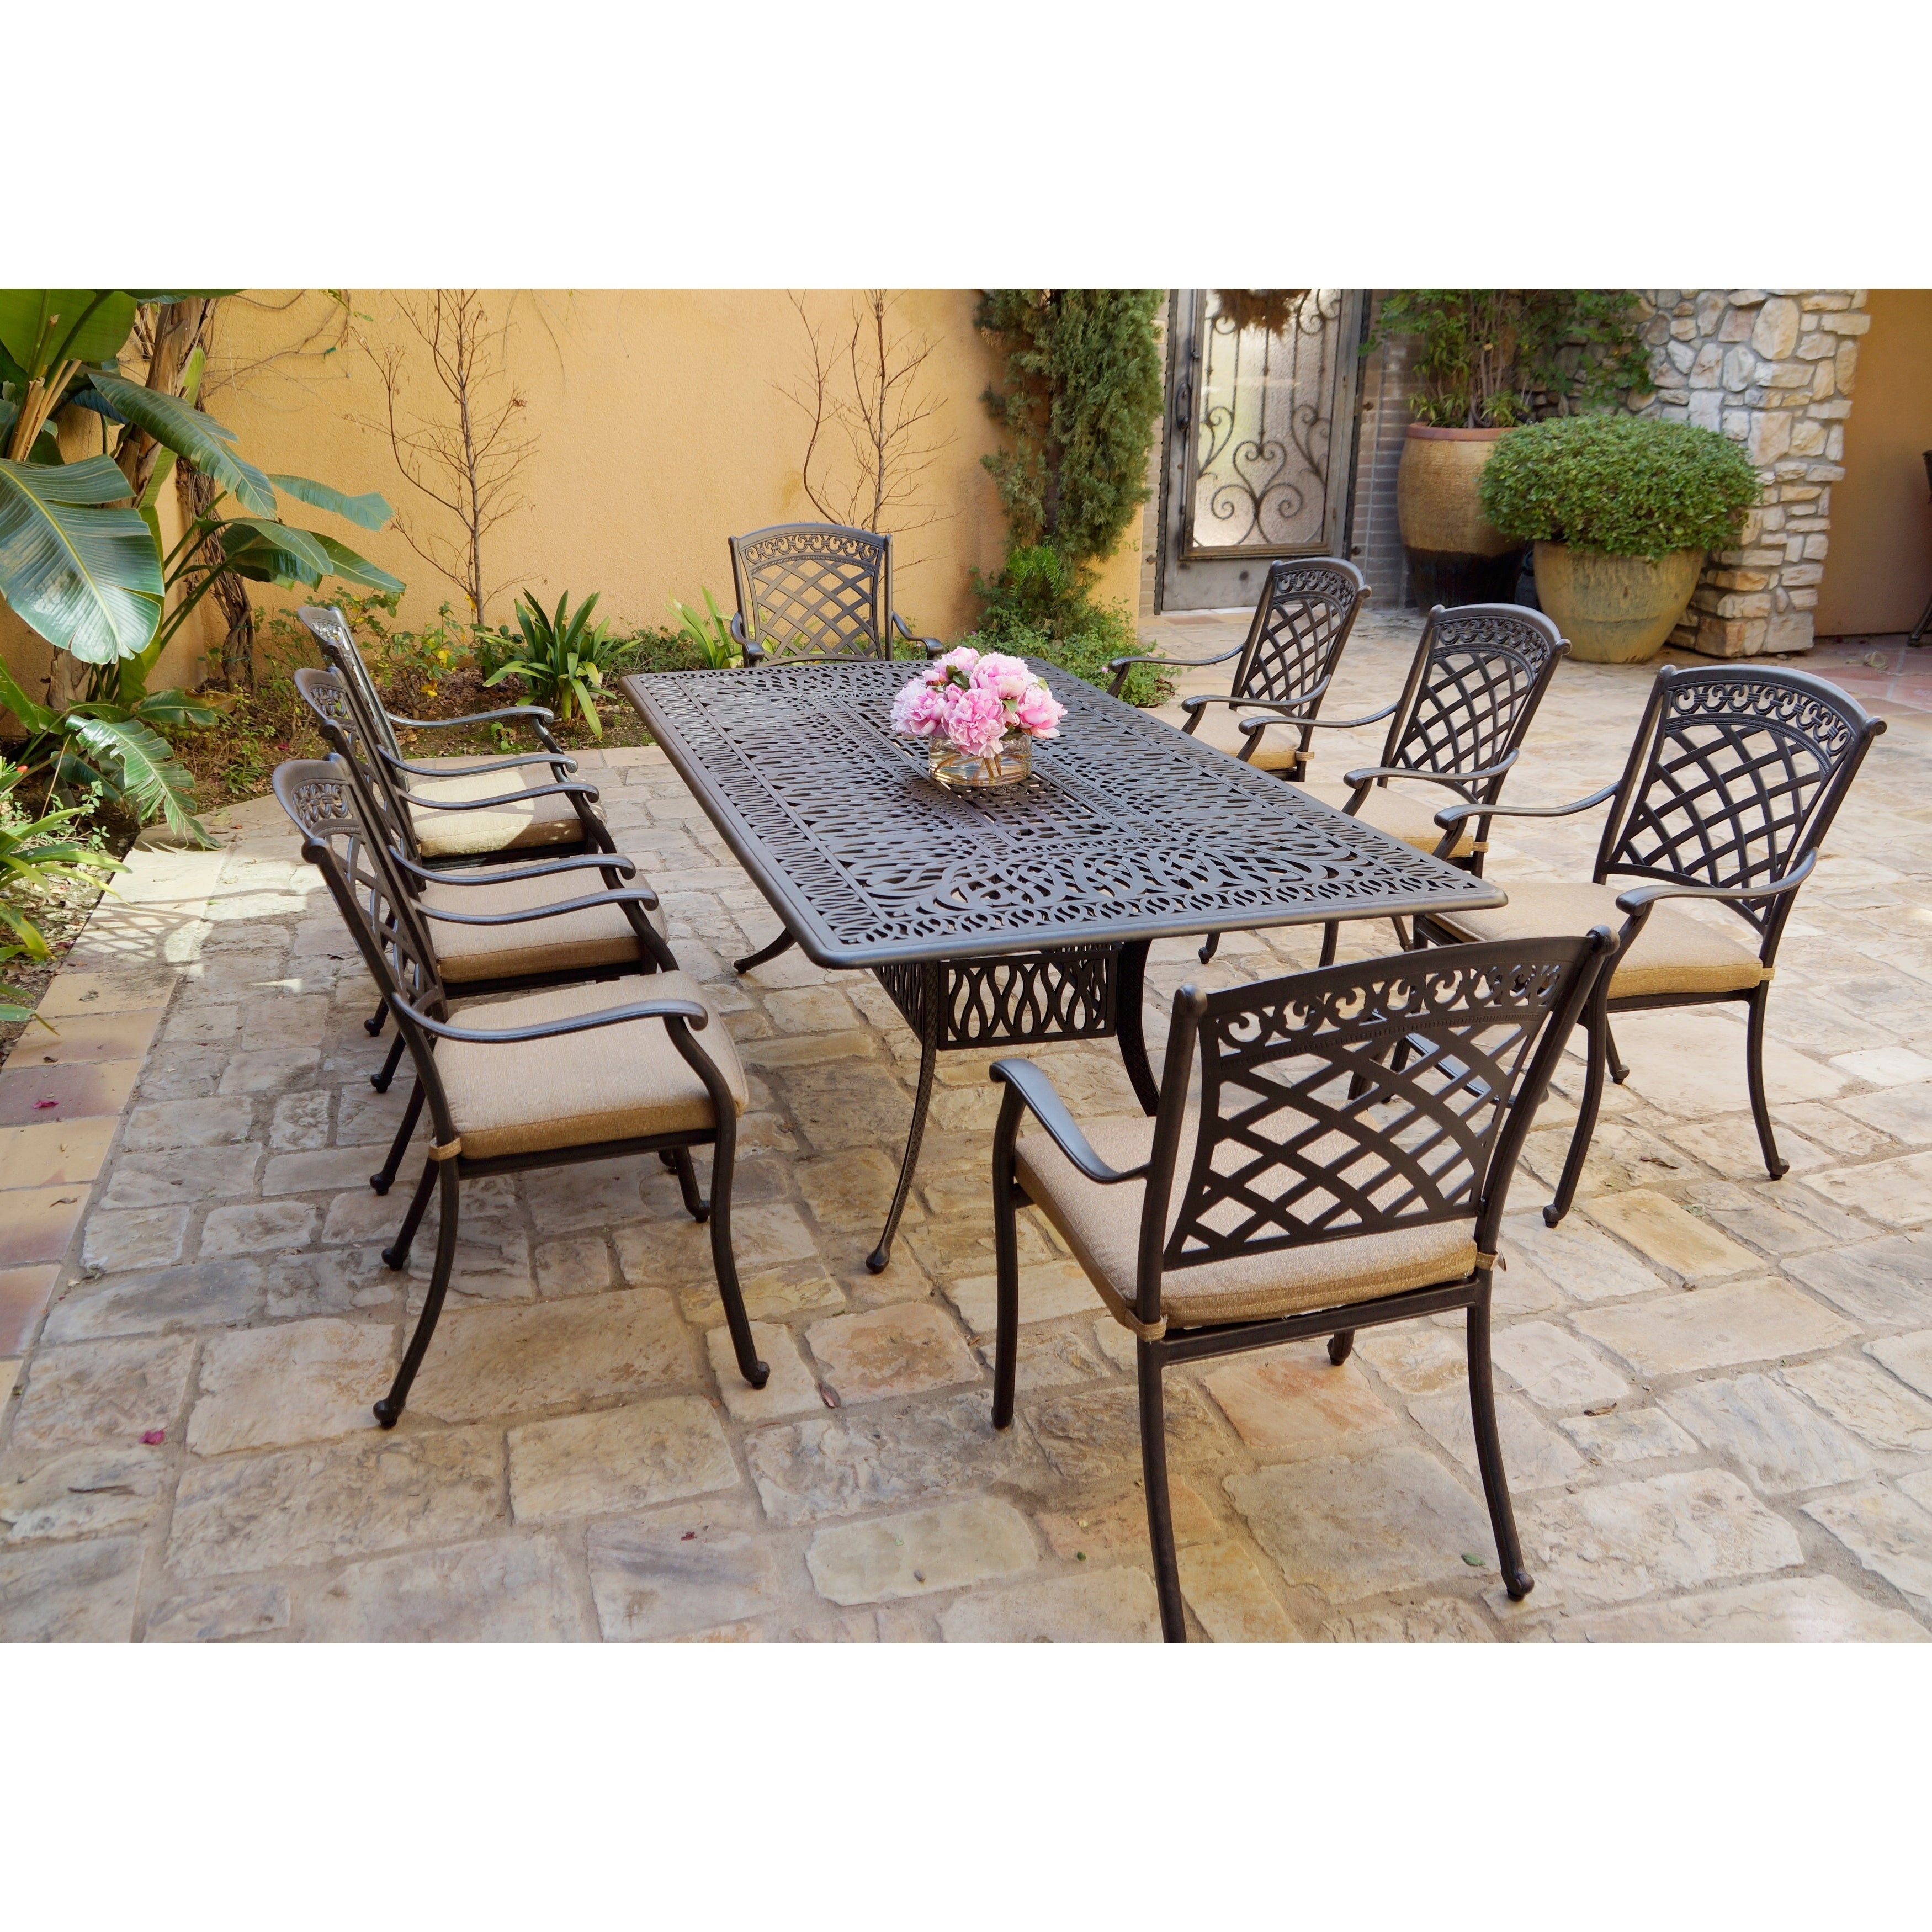 9 Piece Patio Dining Set, 44 X 84 Inch Rectangular Dining Table